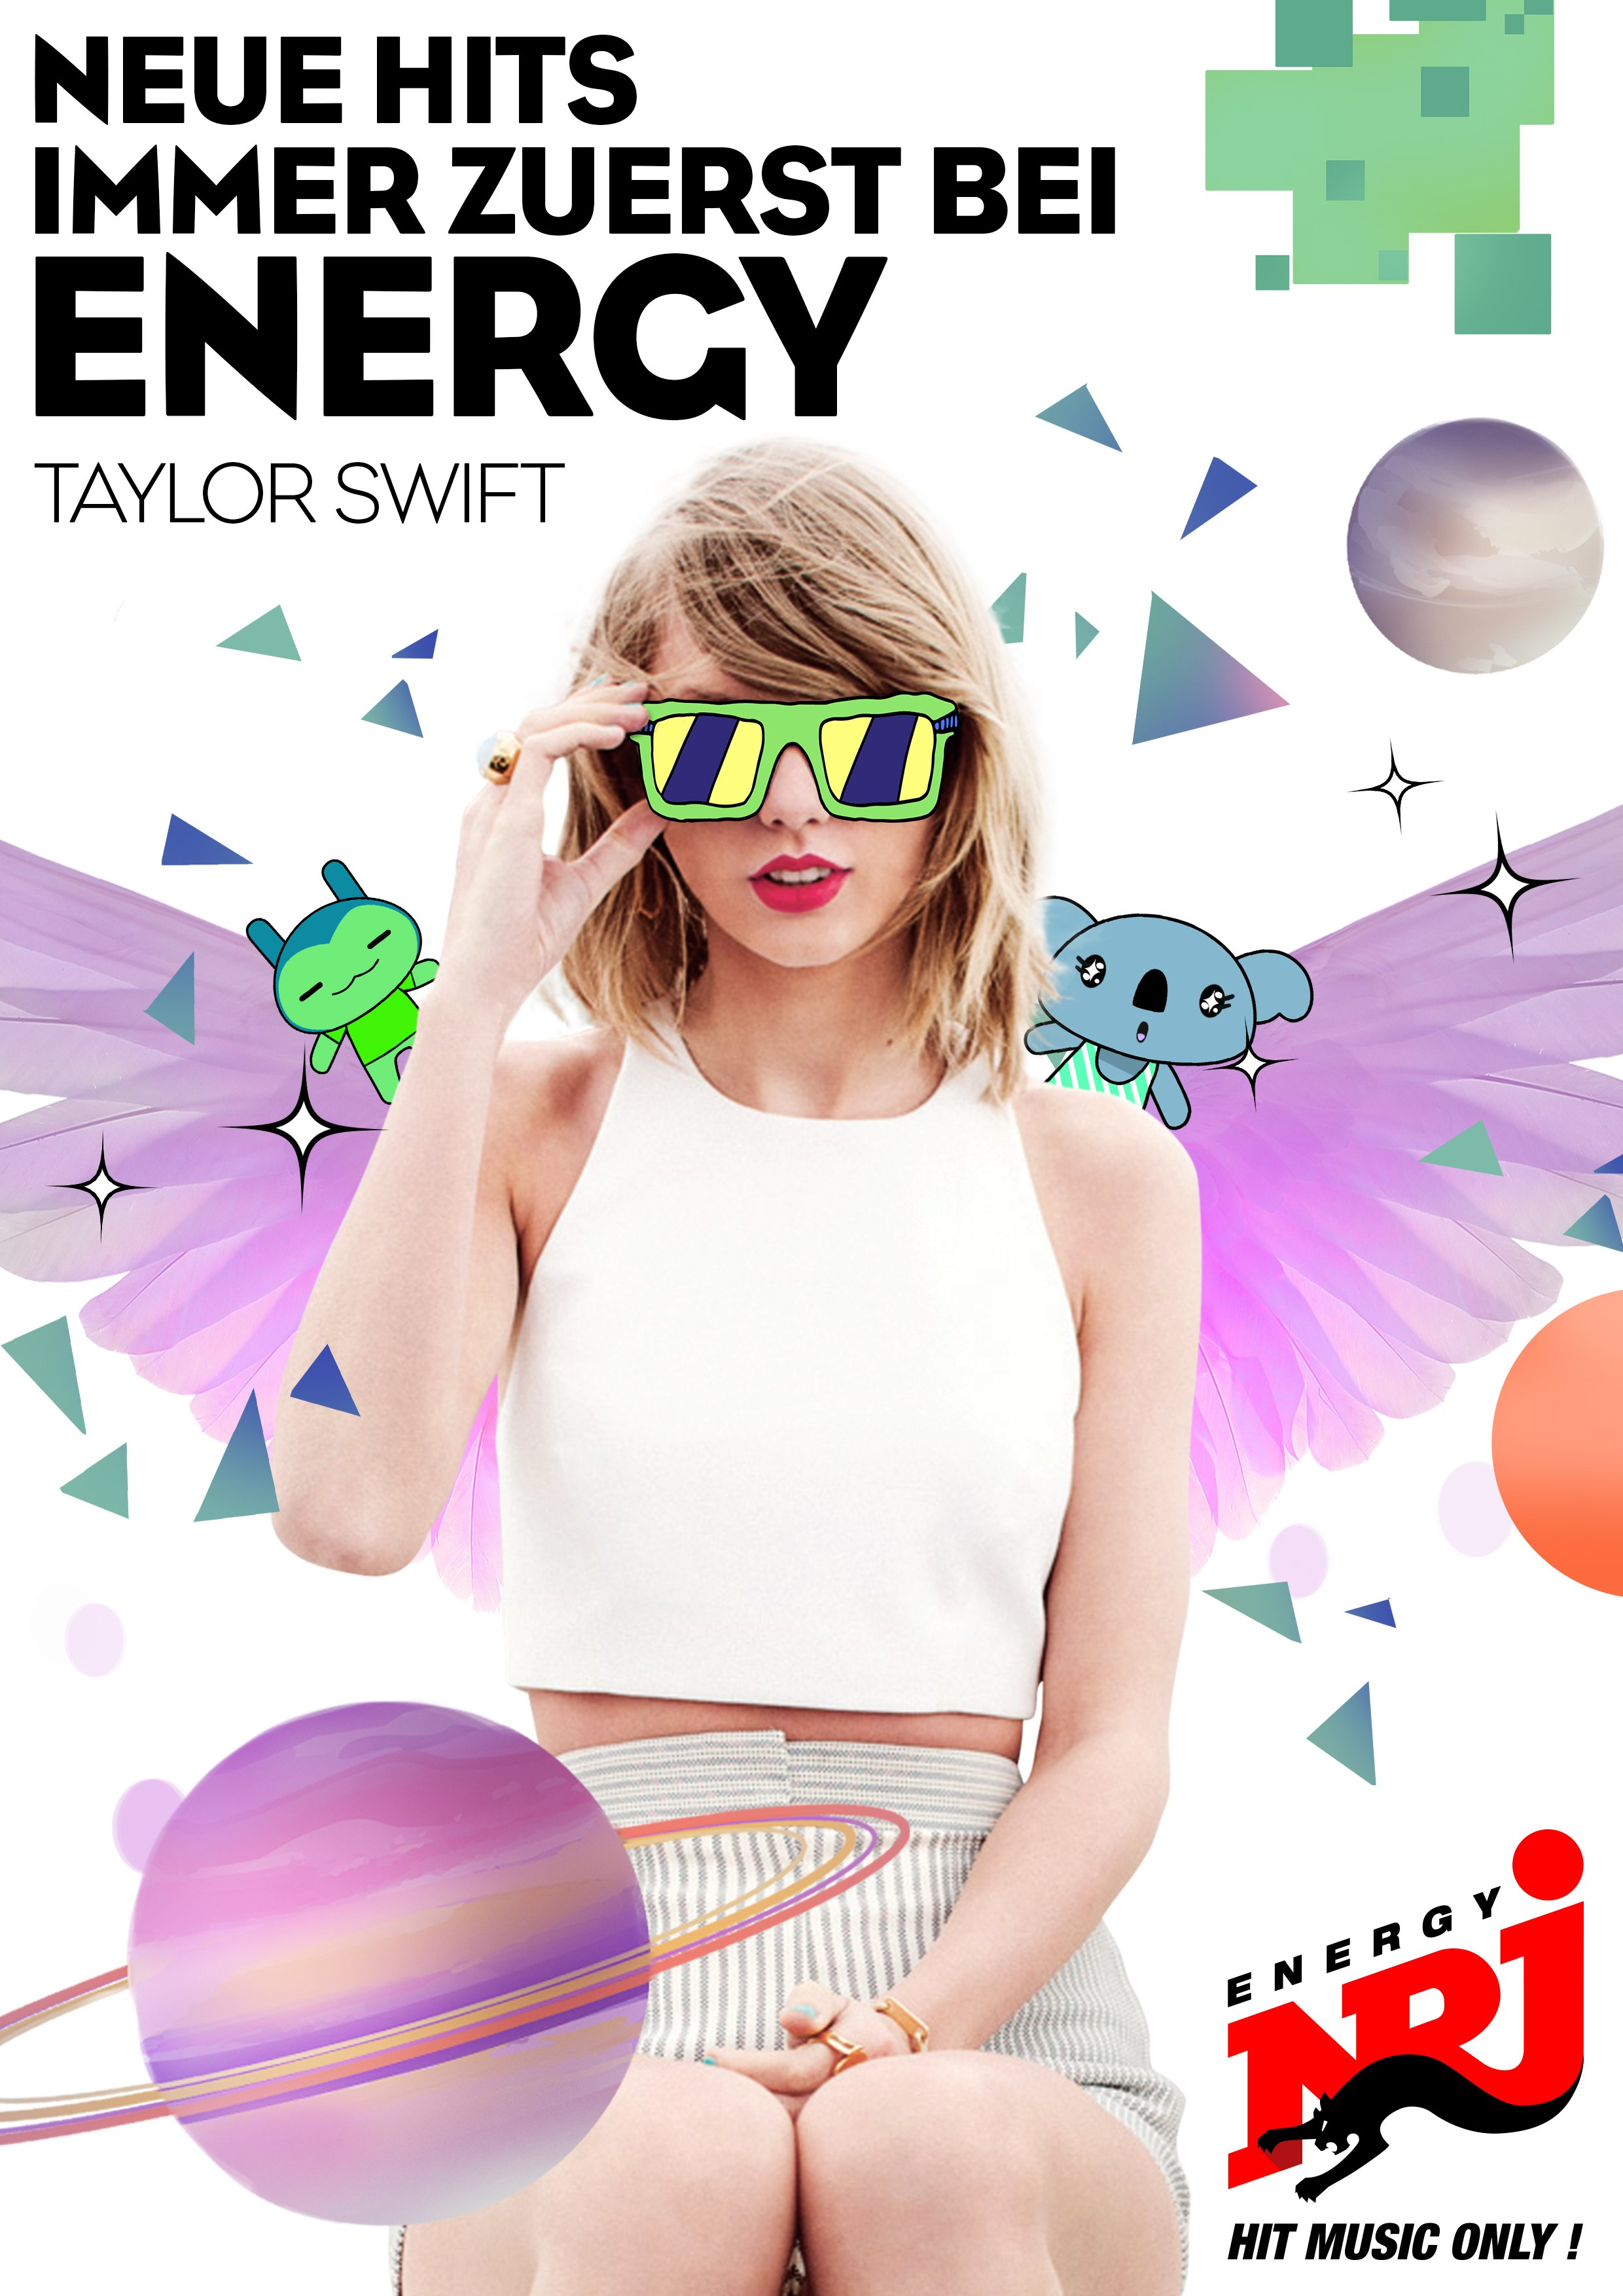 GER_IMAGE_STARS_MONO_TAYLOR_SWIFT_A4